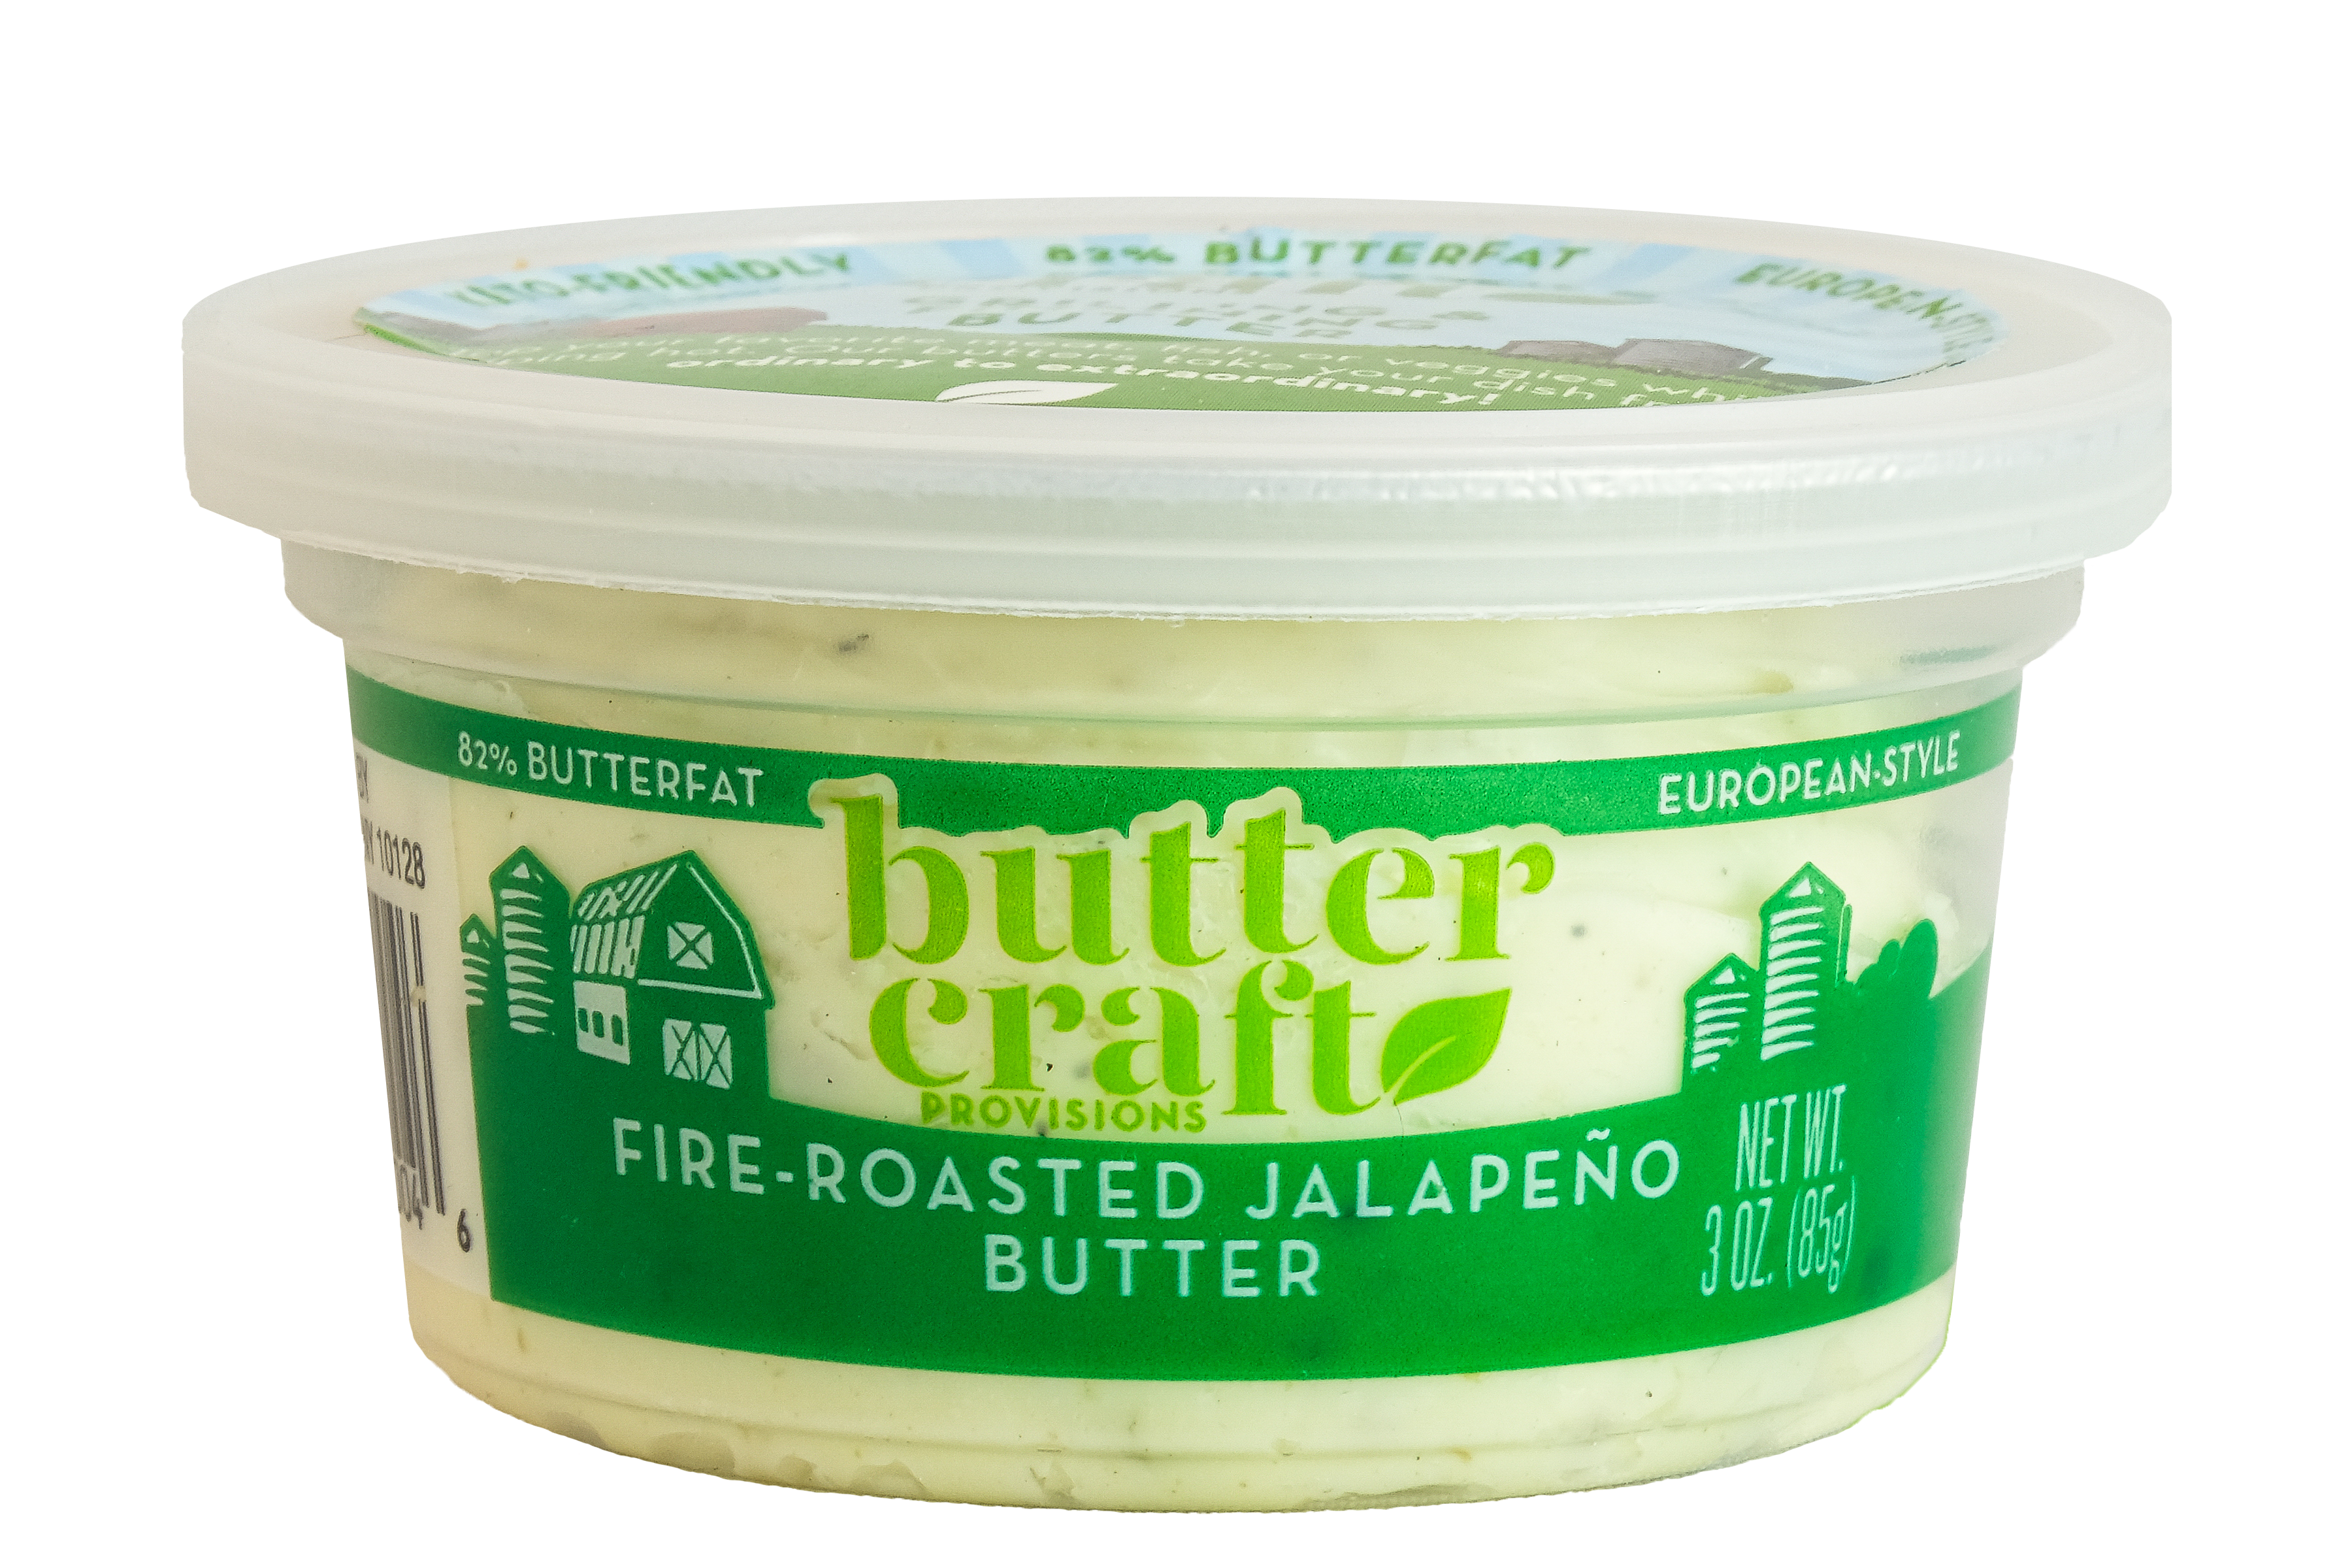 Fire-Roasted Jalapeno Butter